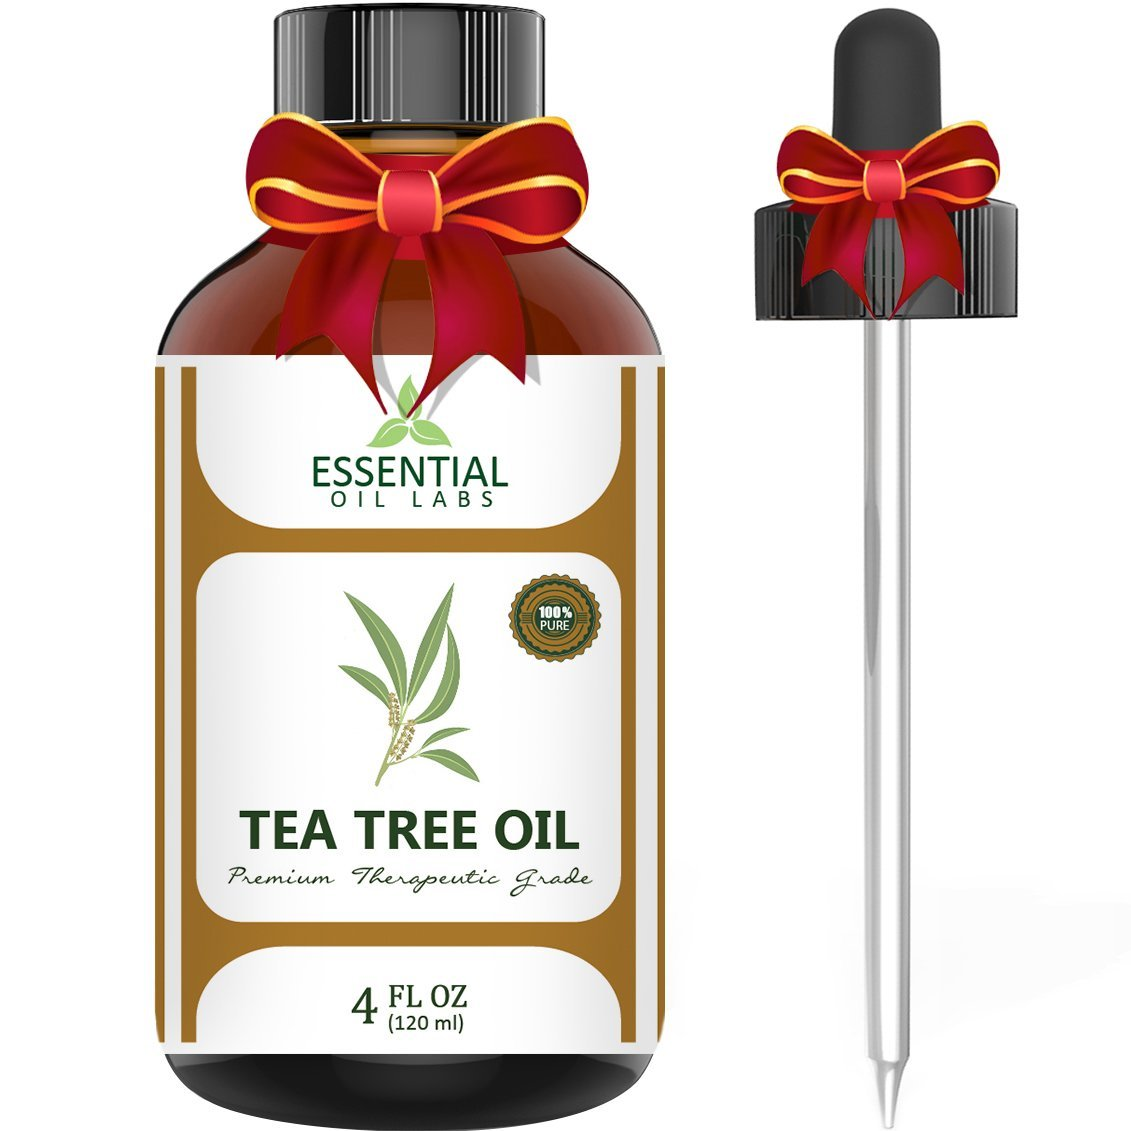 Essential Oil Labs Natural Therapeutic Grade Tea Tree Oil with Glass Dropper